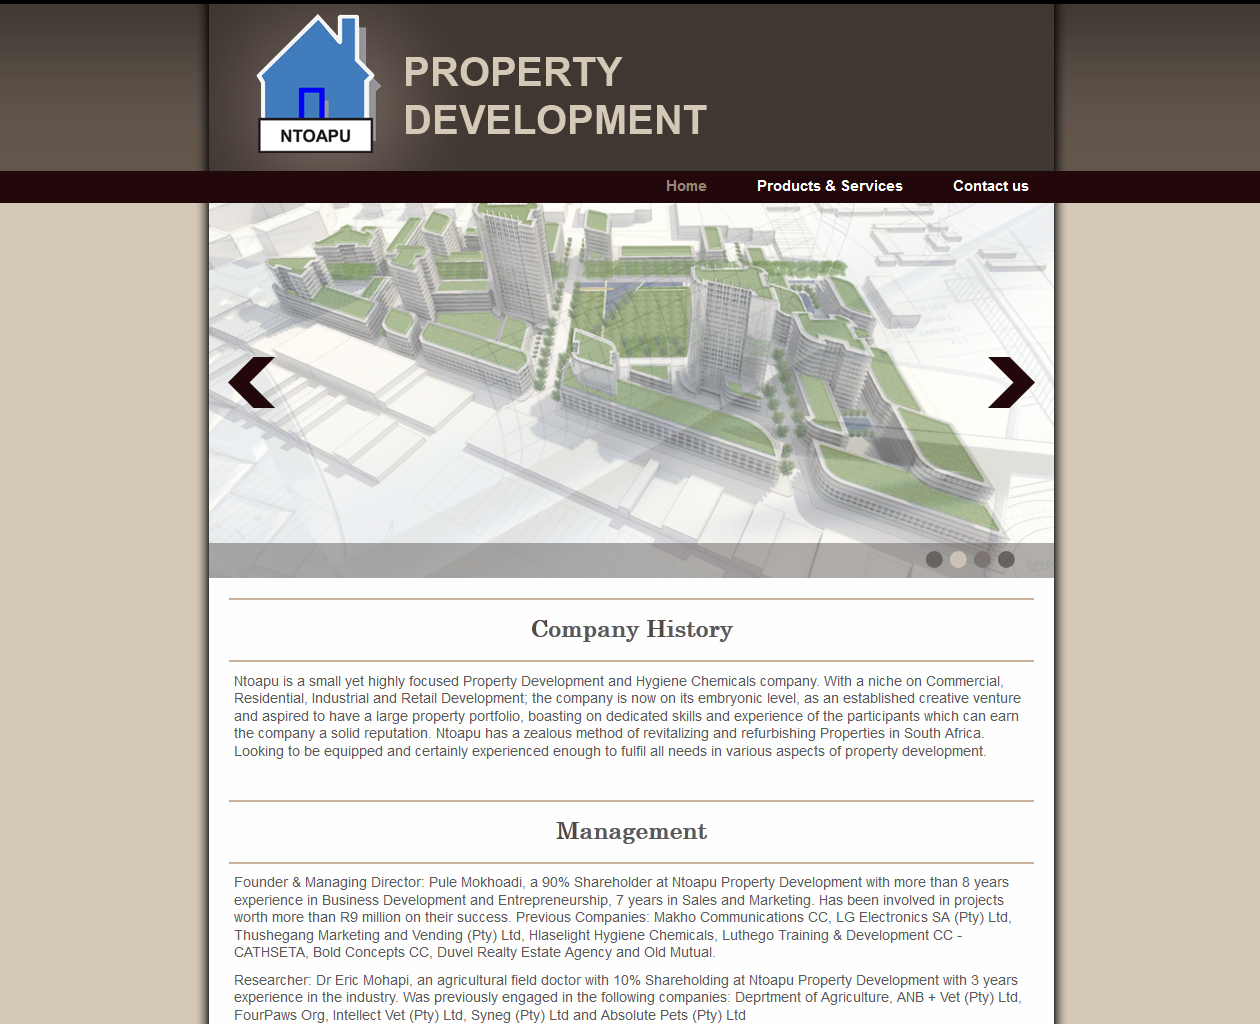 Ntoapu Property Development